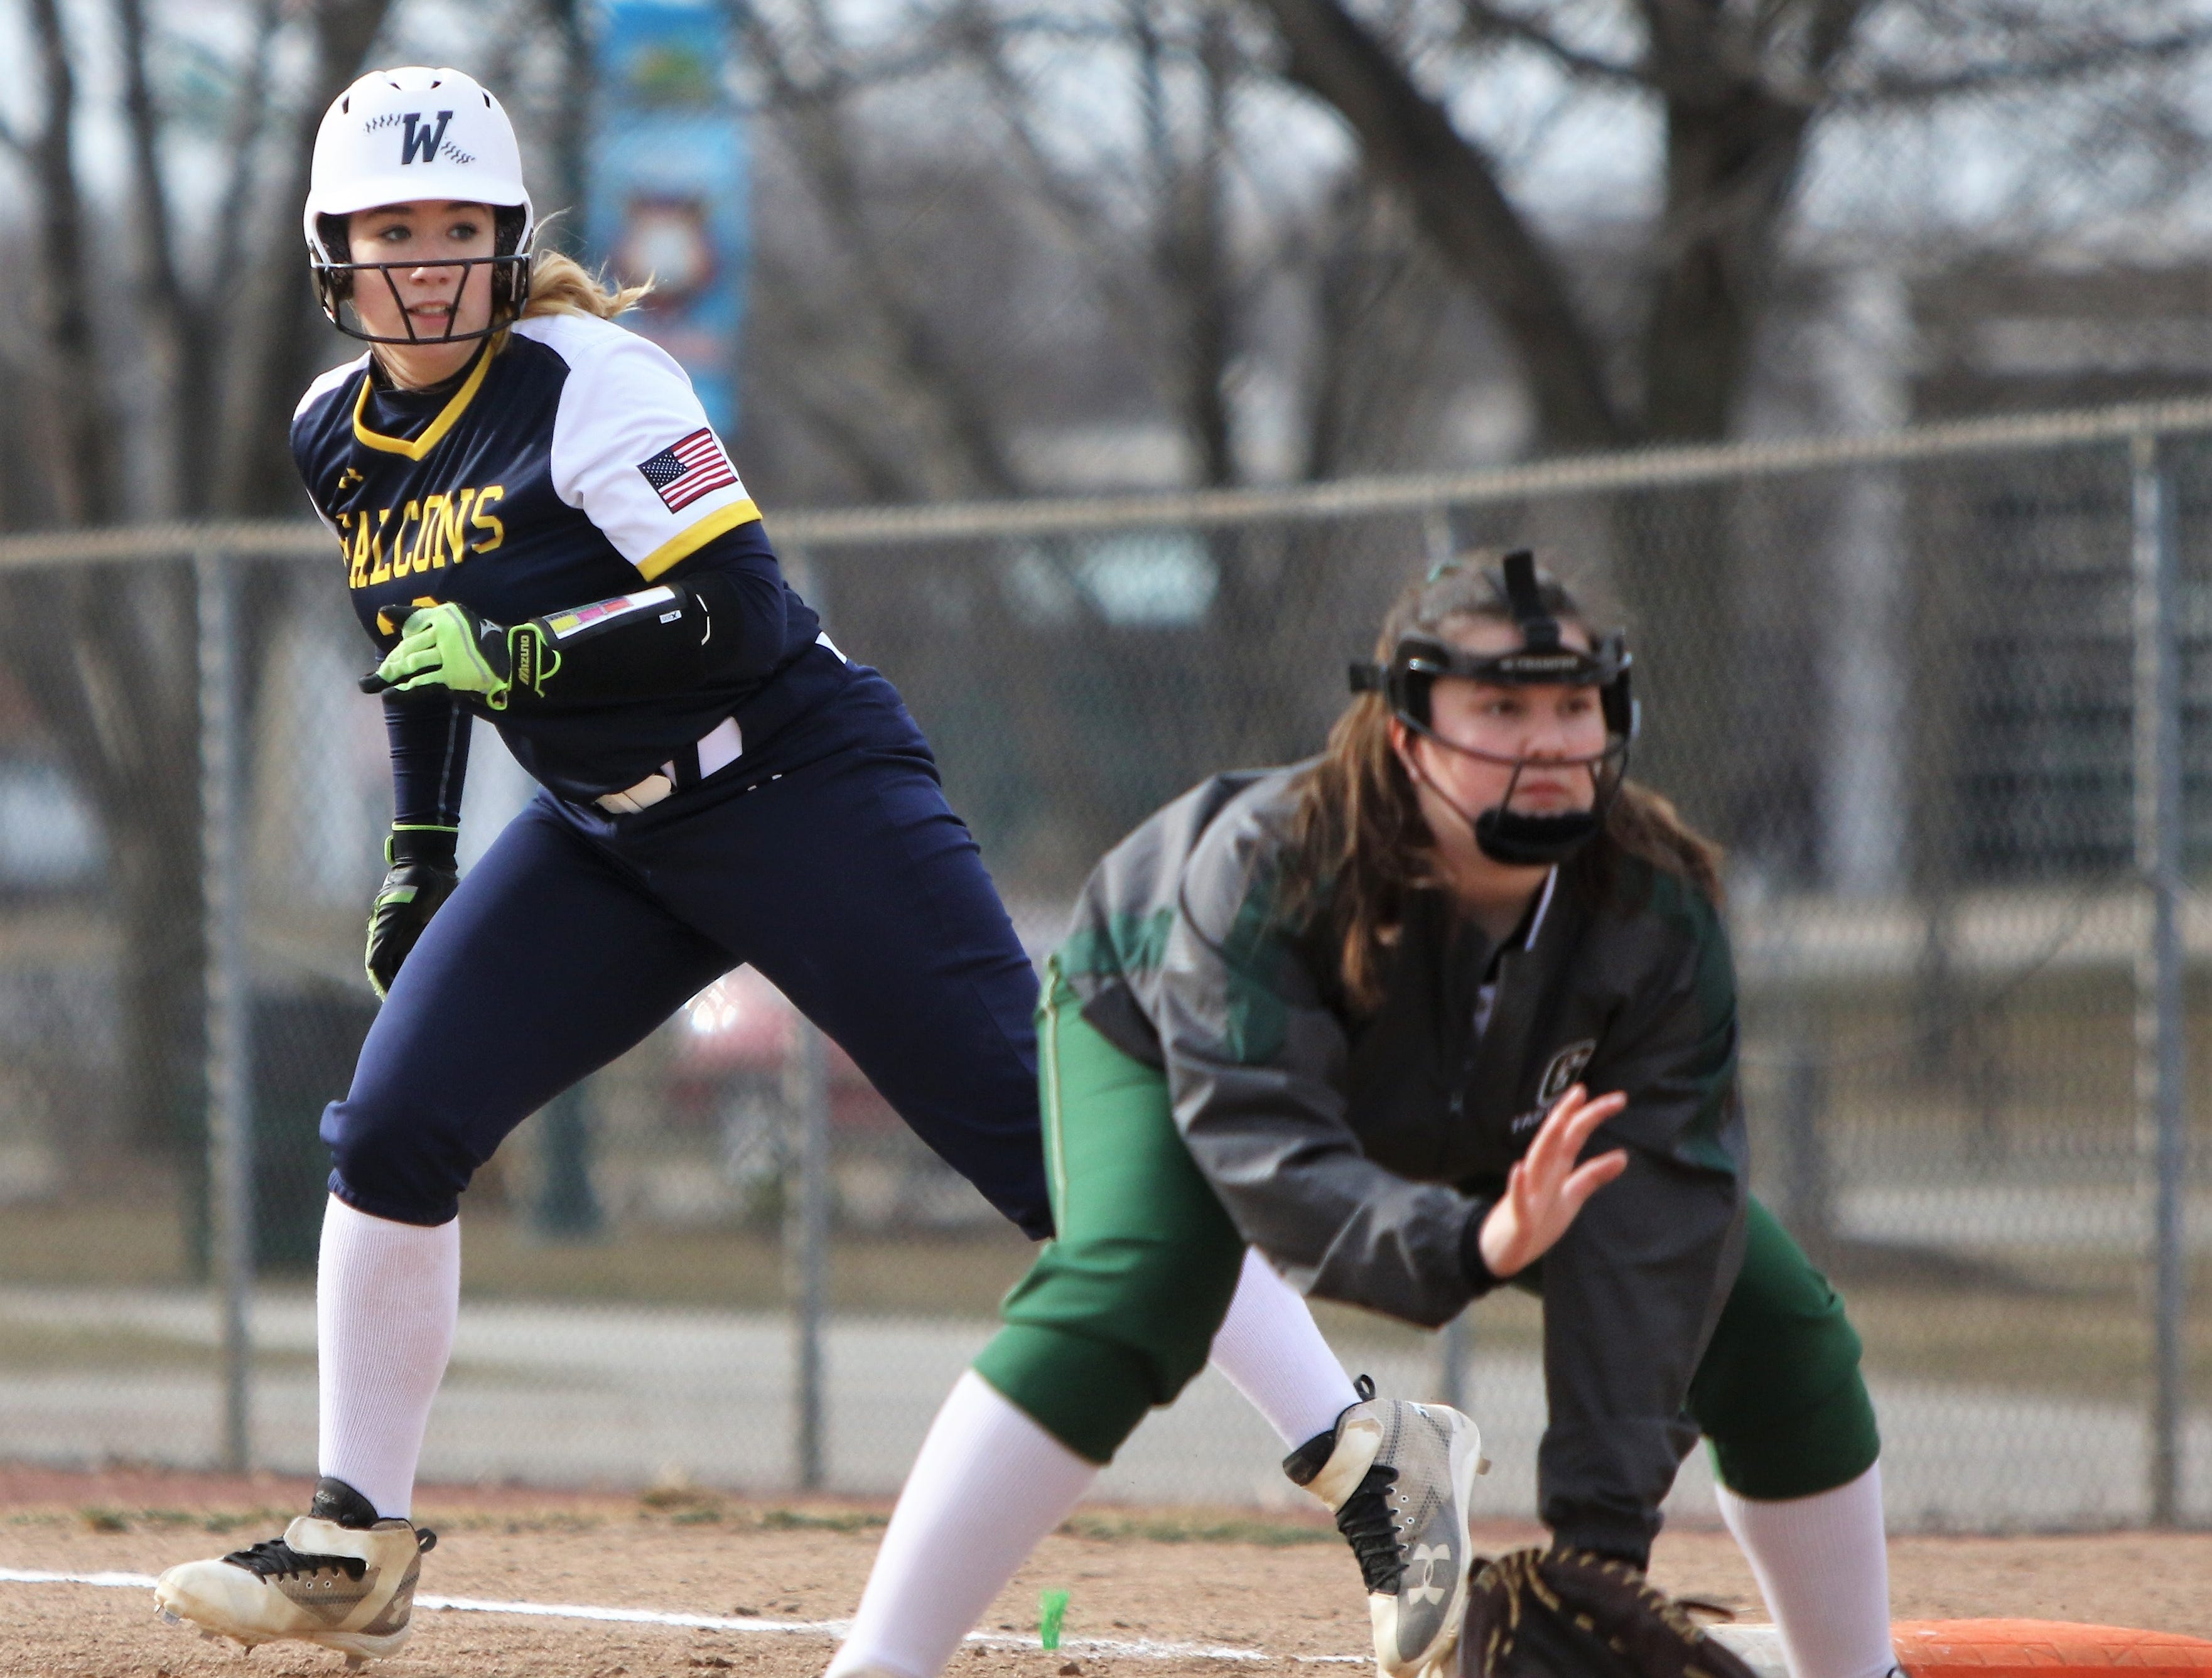 Whitnall's Kayla Hartig (back) takes her lead off of first base in a game against Greenfield on April 3, 2019.